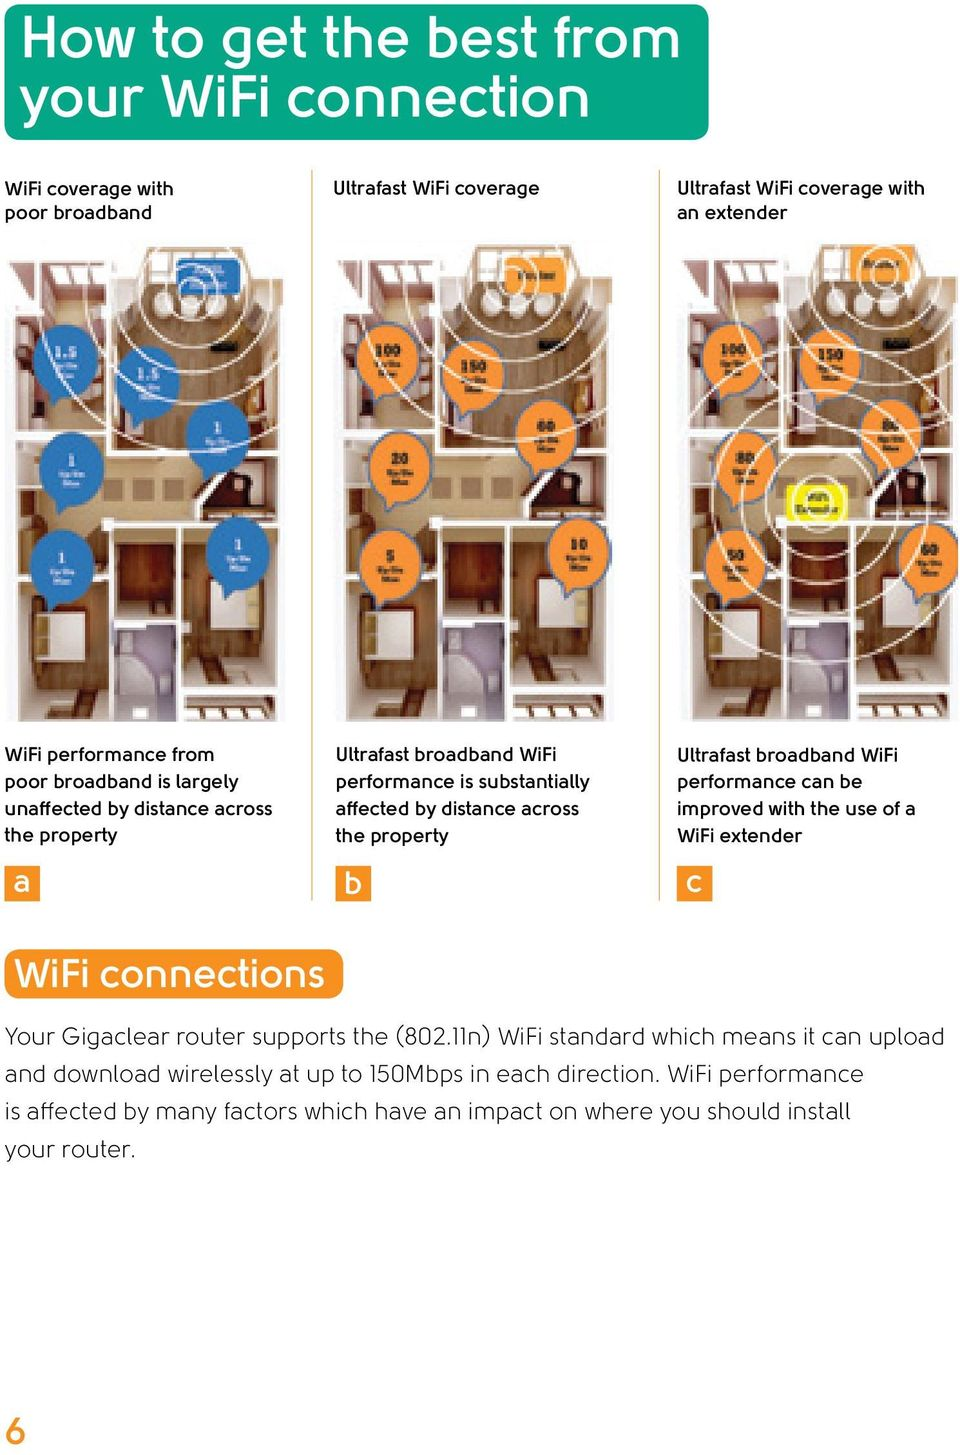 broadband WiFi performance can be improved with the use of a WiFi extender c WiFi connections Your Gigaclear router supports the (802.